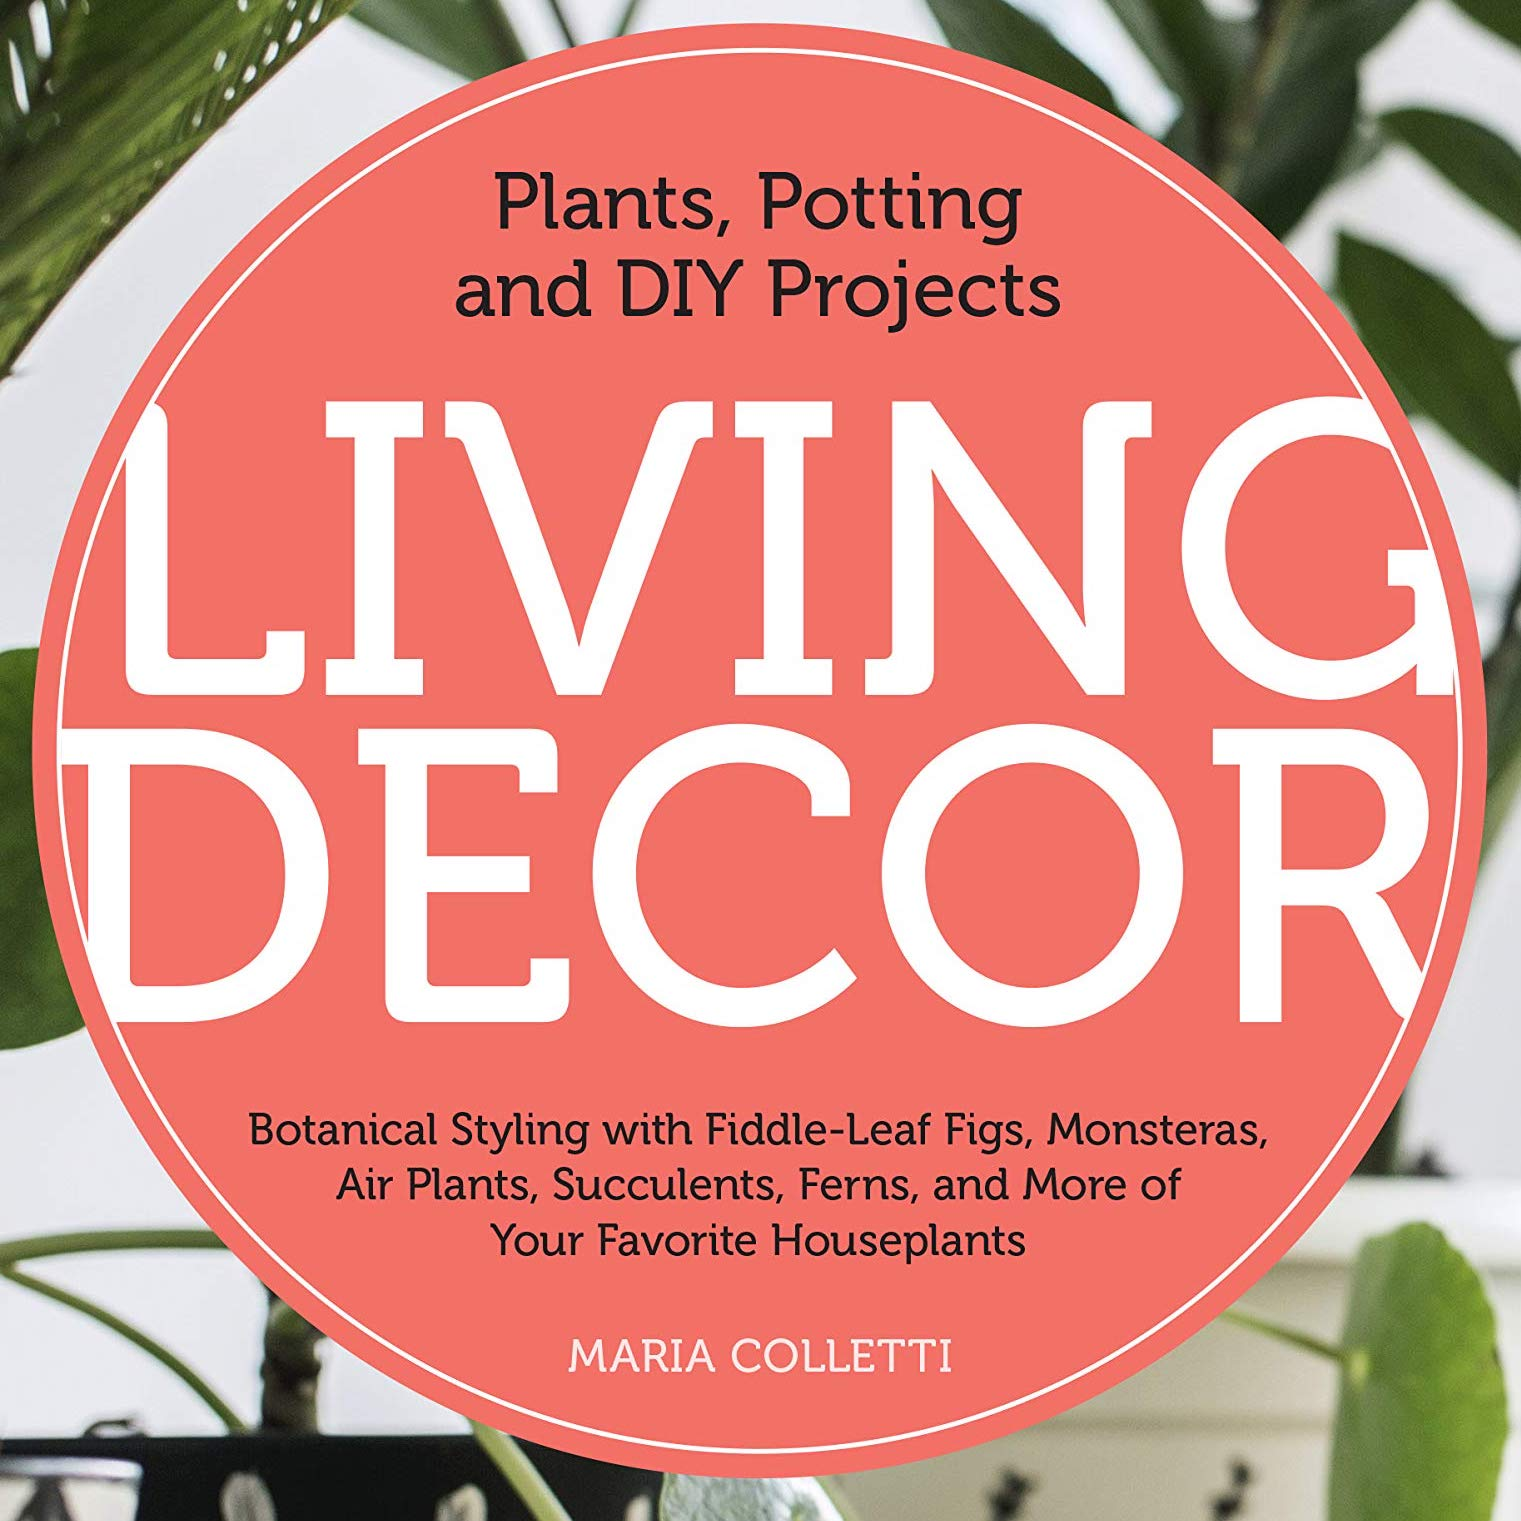 Living Decor: Plants, Potting and DIY Projects, A book talk with Maria Colletti